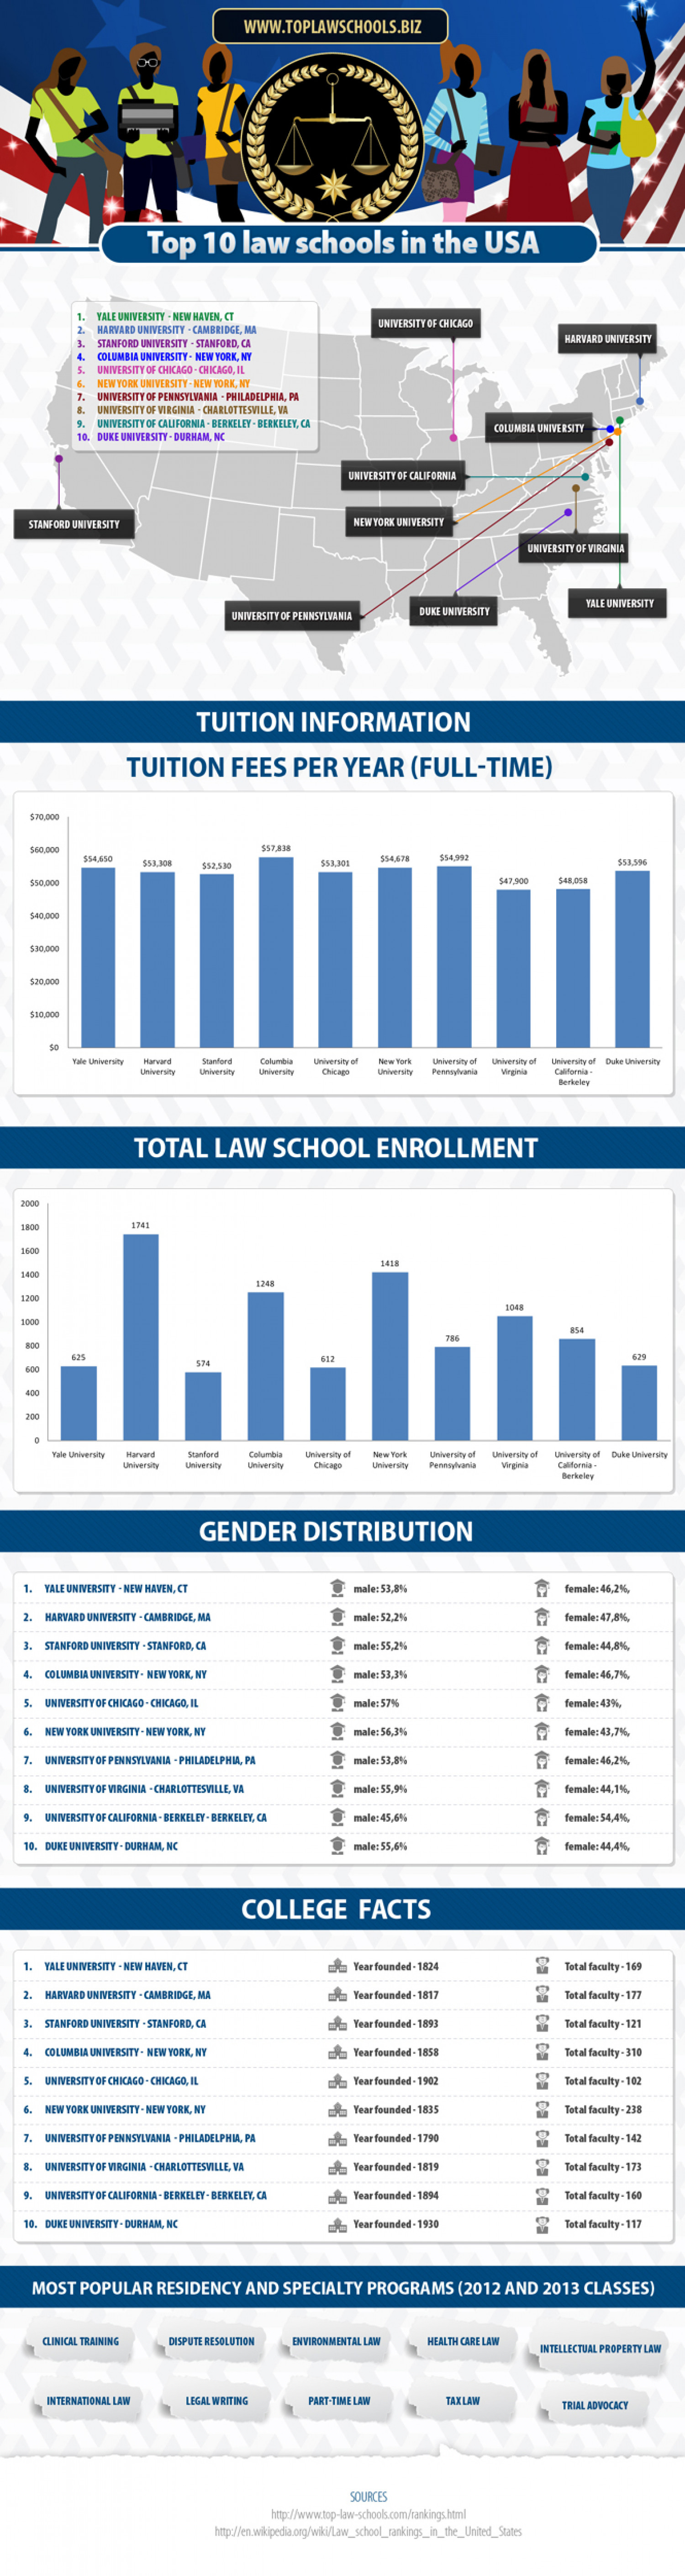 Top 10 Law Schools in the USA Infographic